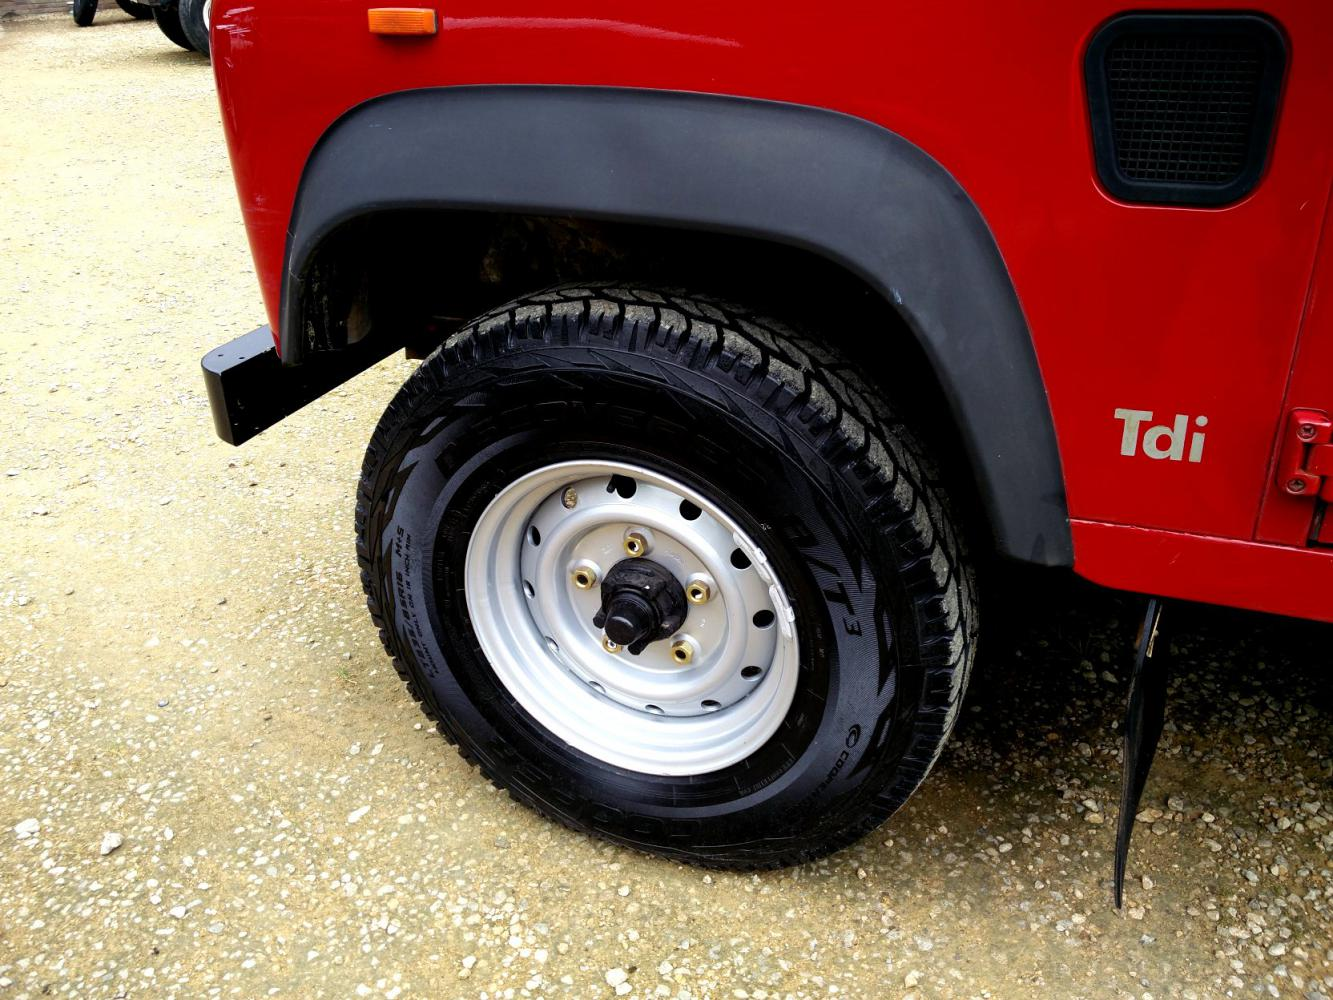 Click image for larger version  Name:1992 LR LHD Defender 90 Red 200 Tdi WOLF rims with new tyres.jpg Views:155 Size:202.6 KB ID:263714